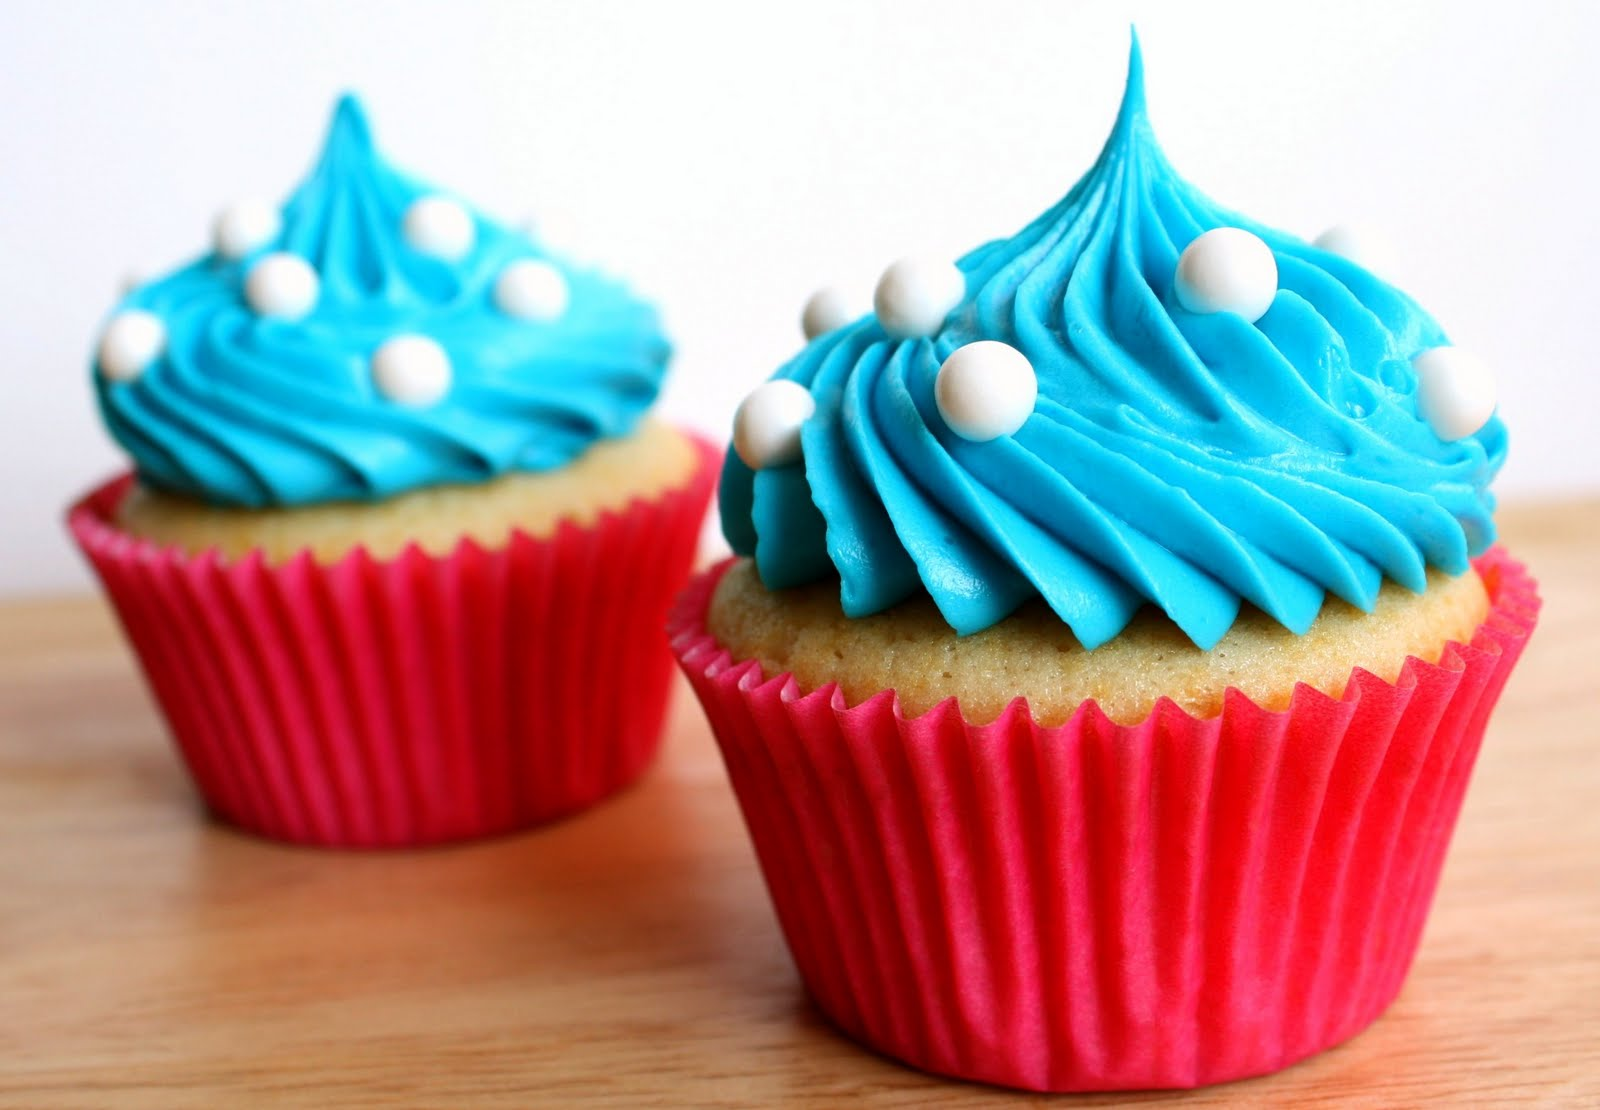 cup cake s - photo #3